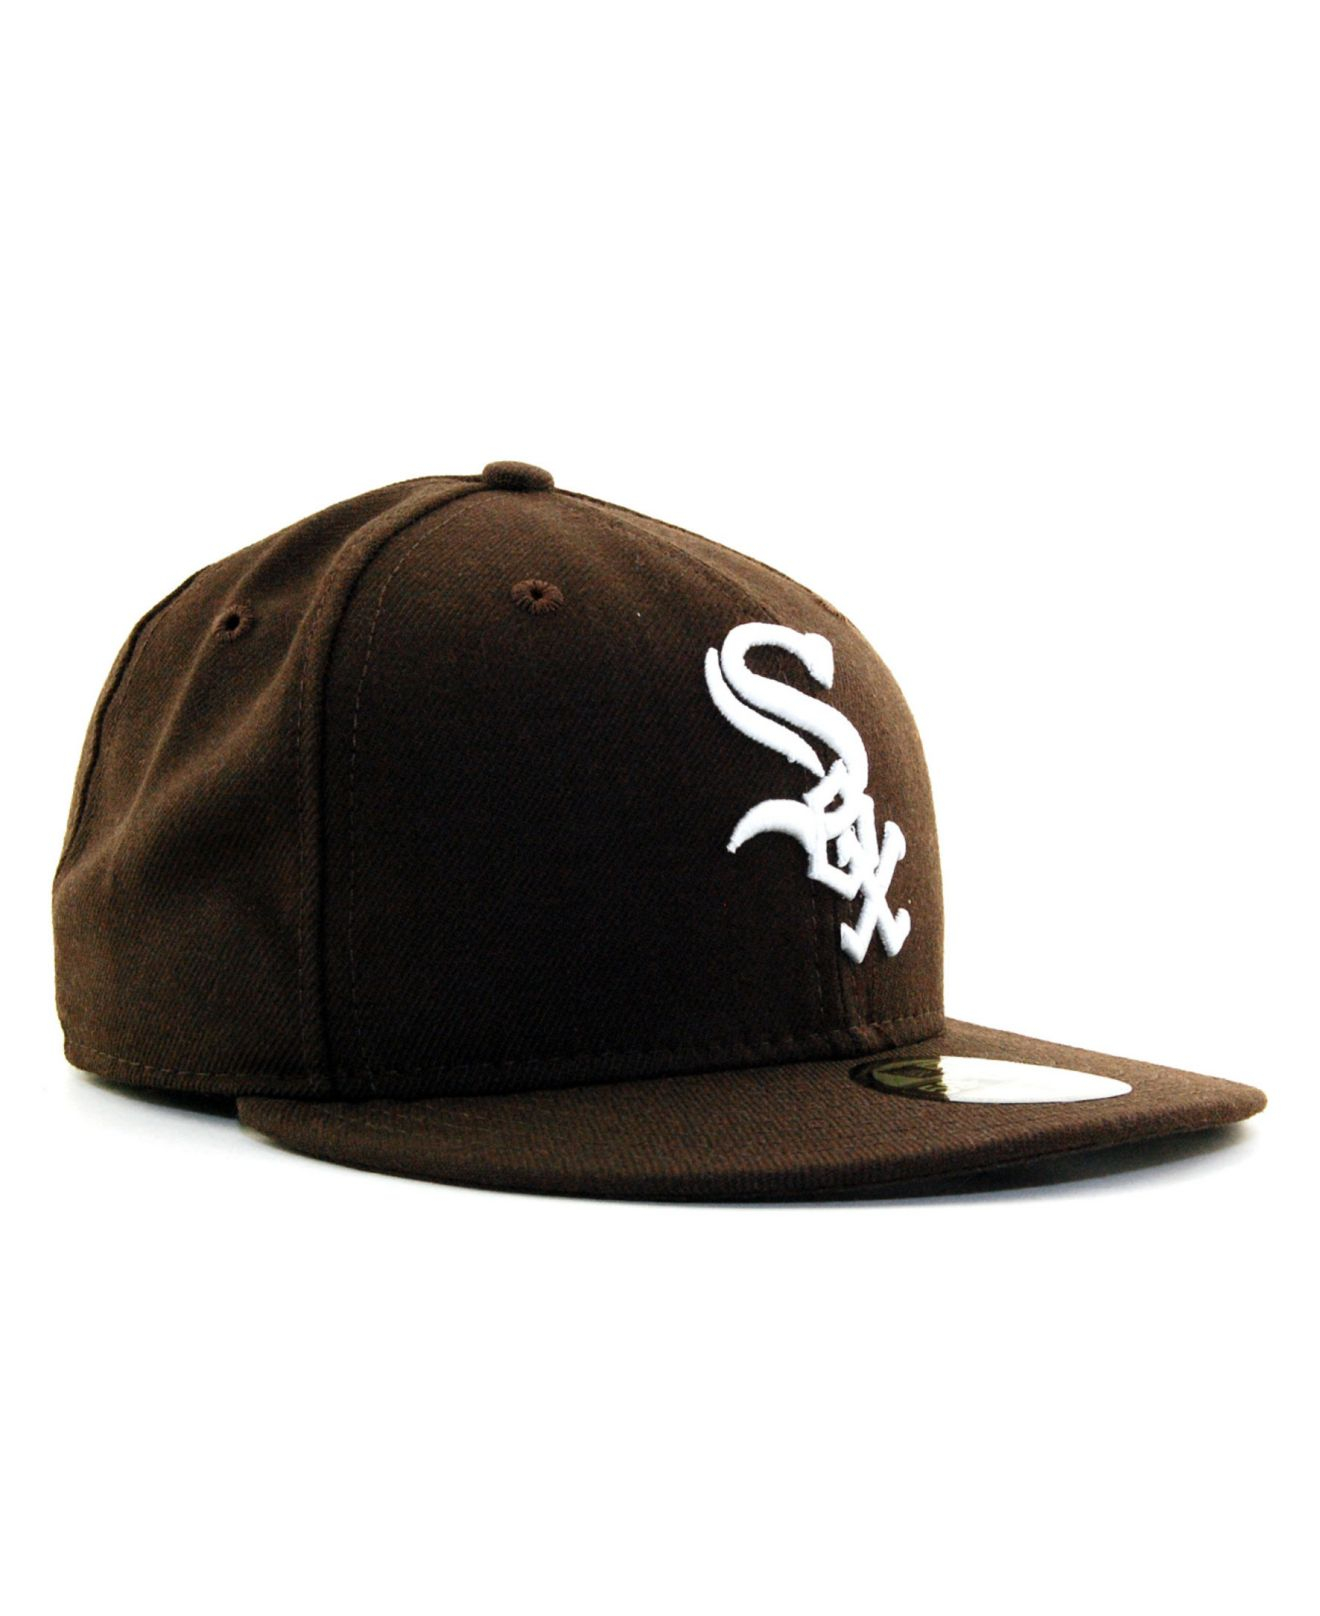 newest collection 5adca 73866 ... mlb low profile c dub 59fiftyhatcap 5dfeb 564dd  coupon for gallery.  previously sold at macys mens new era 59fifty 7991c 80e14